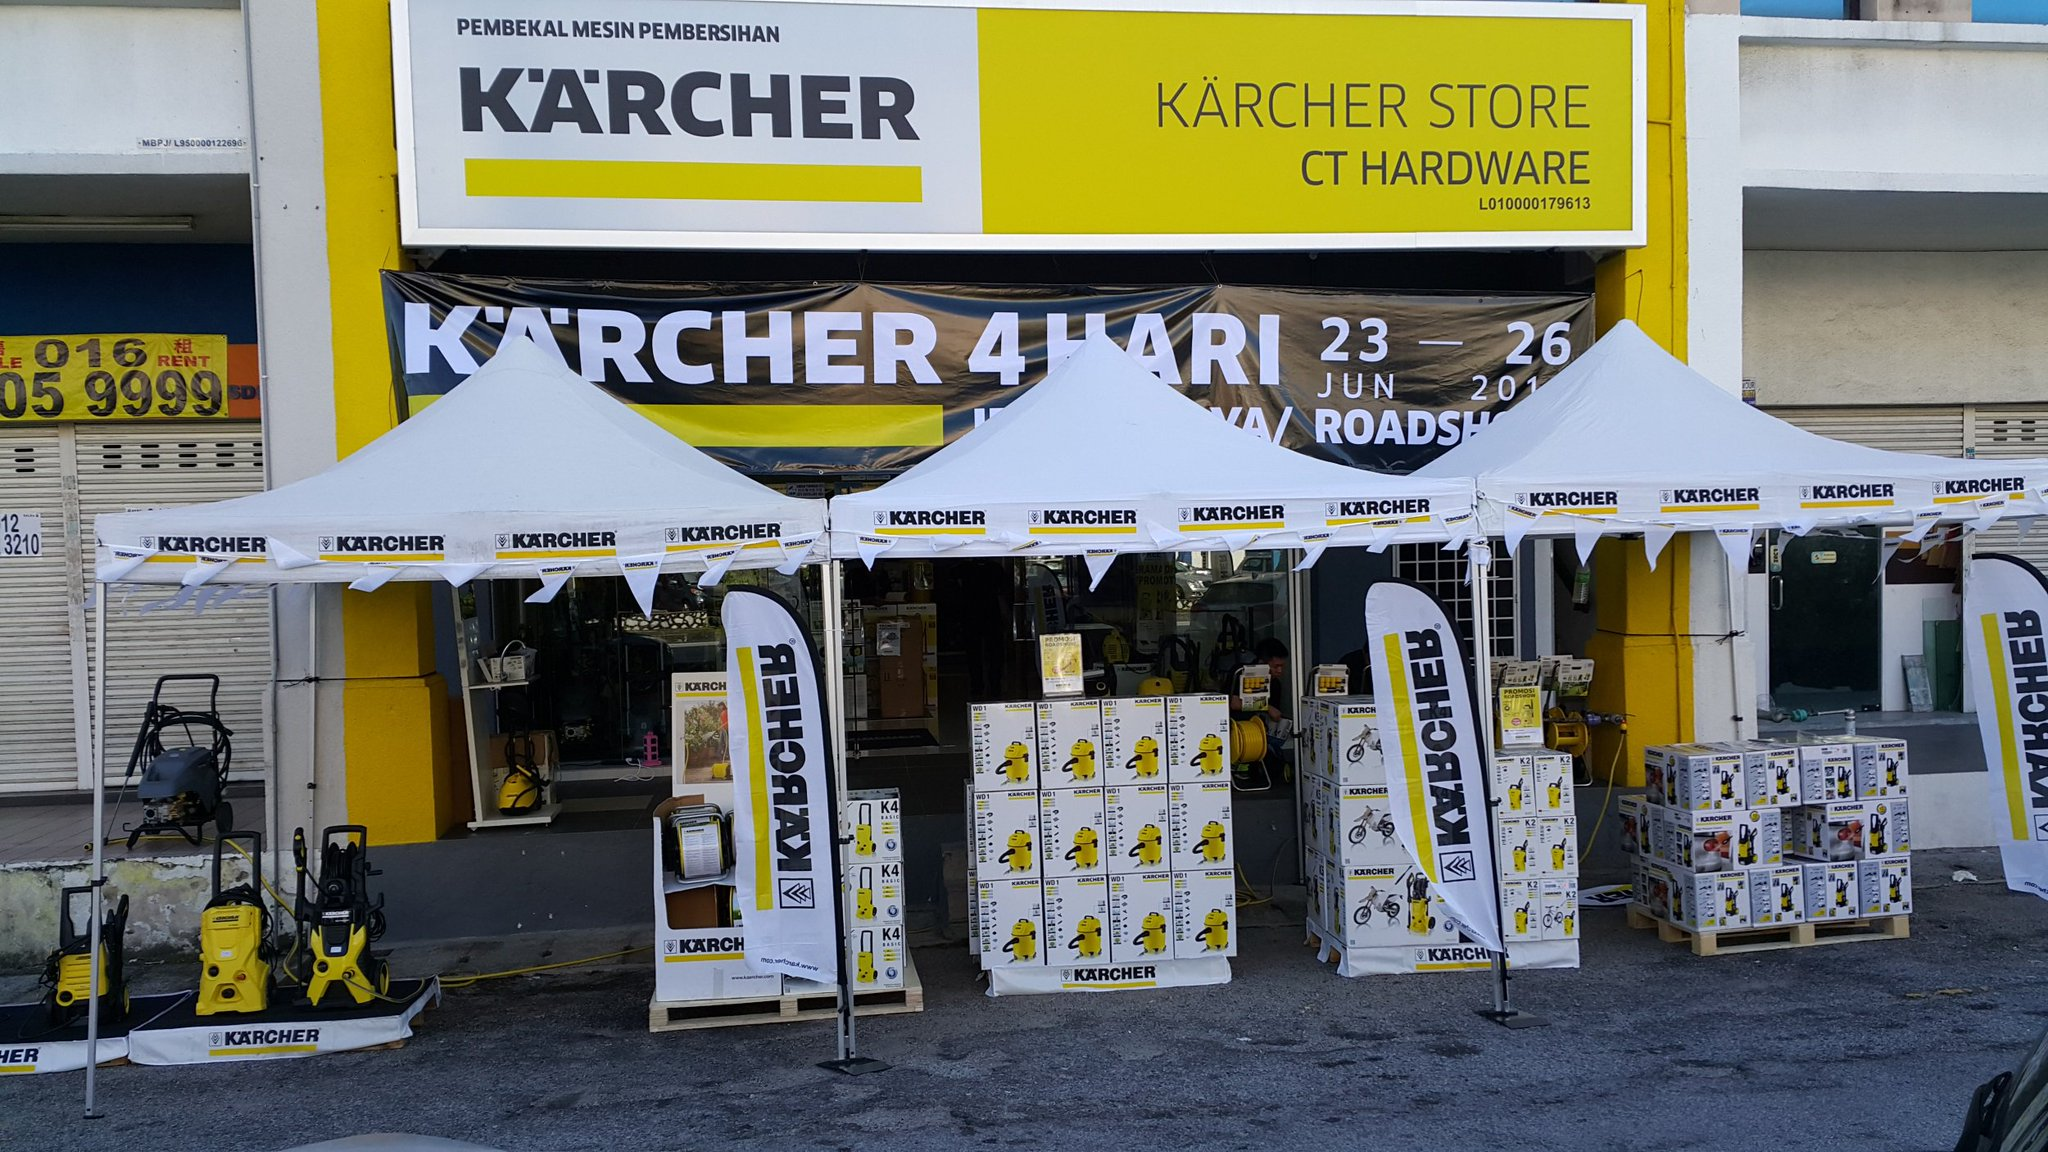 Ct Hardware Sdn Bhd On Twitter Karcher Roadshow Day 3 Is Here Don T Miss It Until Tomorrow Only Demo Is Available Https T Co Jngldbdujb